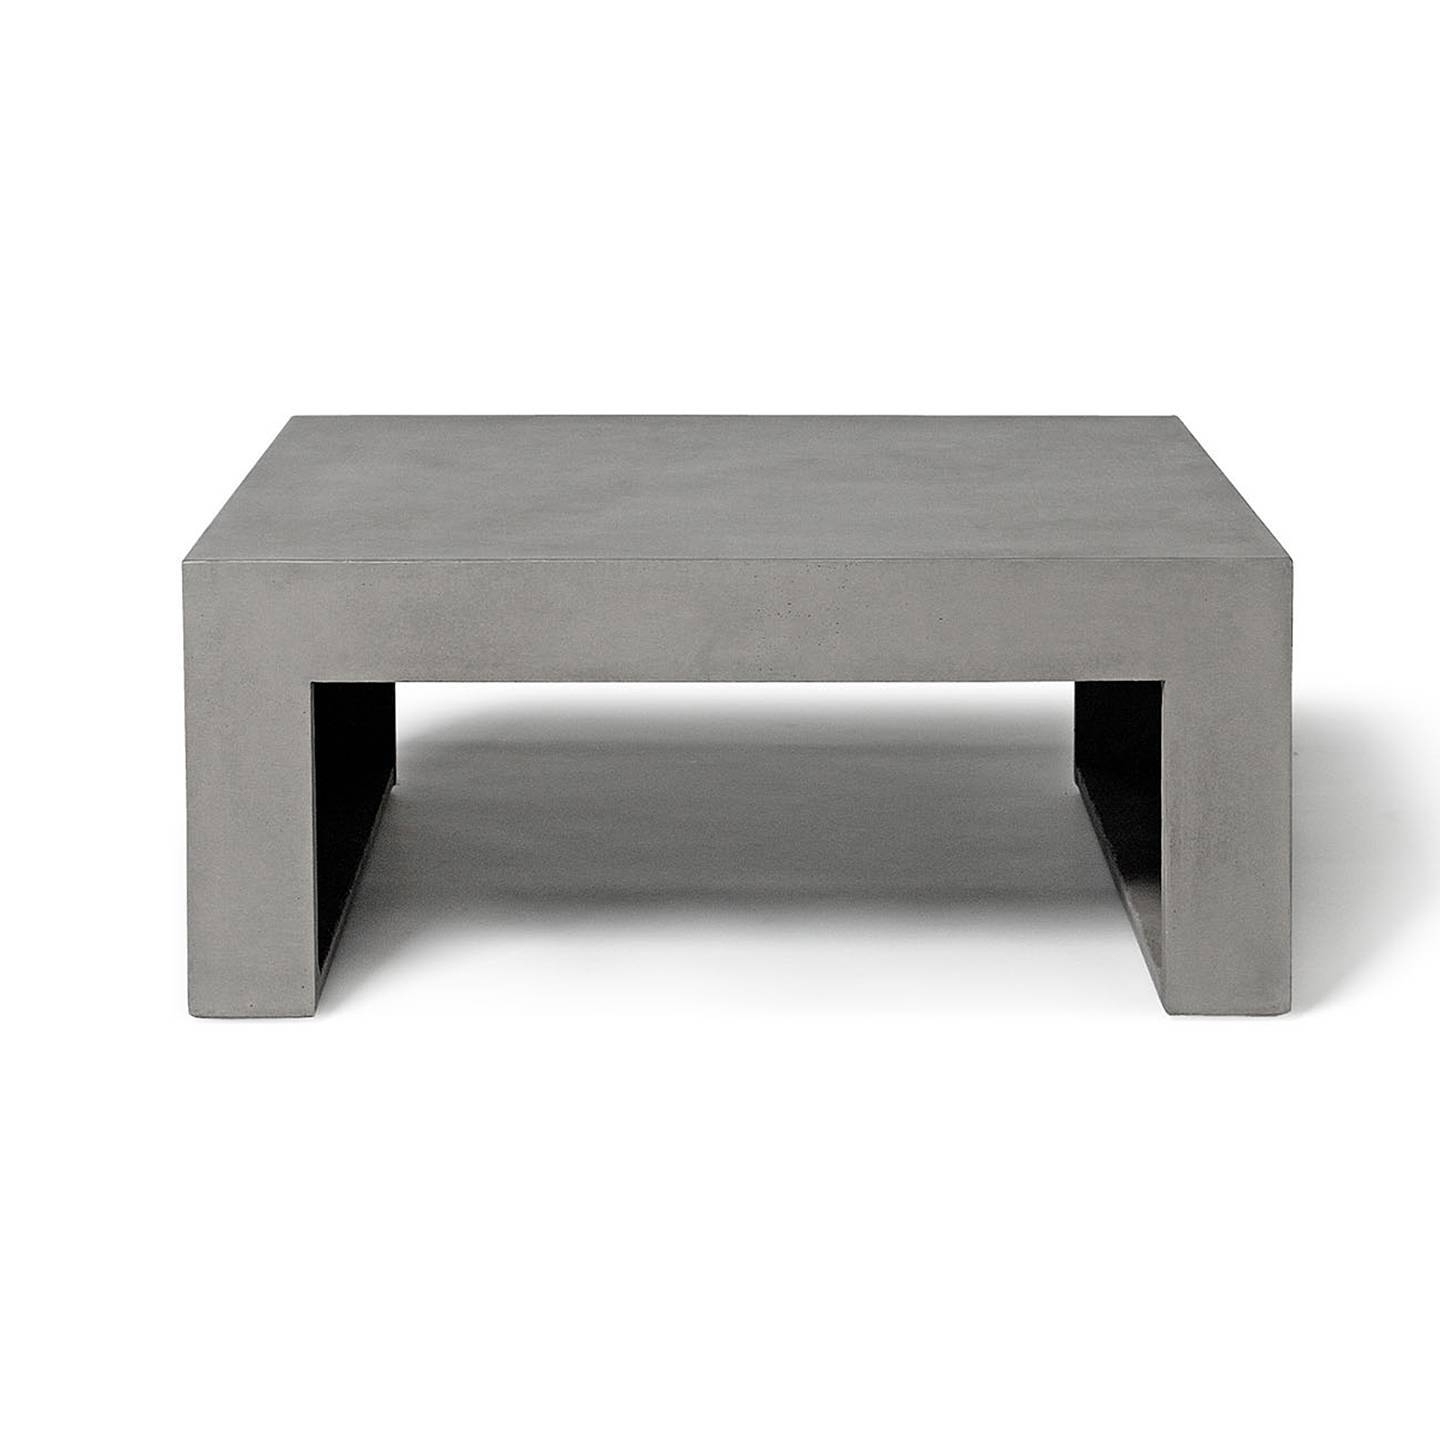 Dawn – Square Low Coffee Table | Lyon Béton intended for Square Low Coffee Tables (Image 7 of 20)